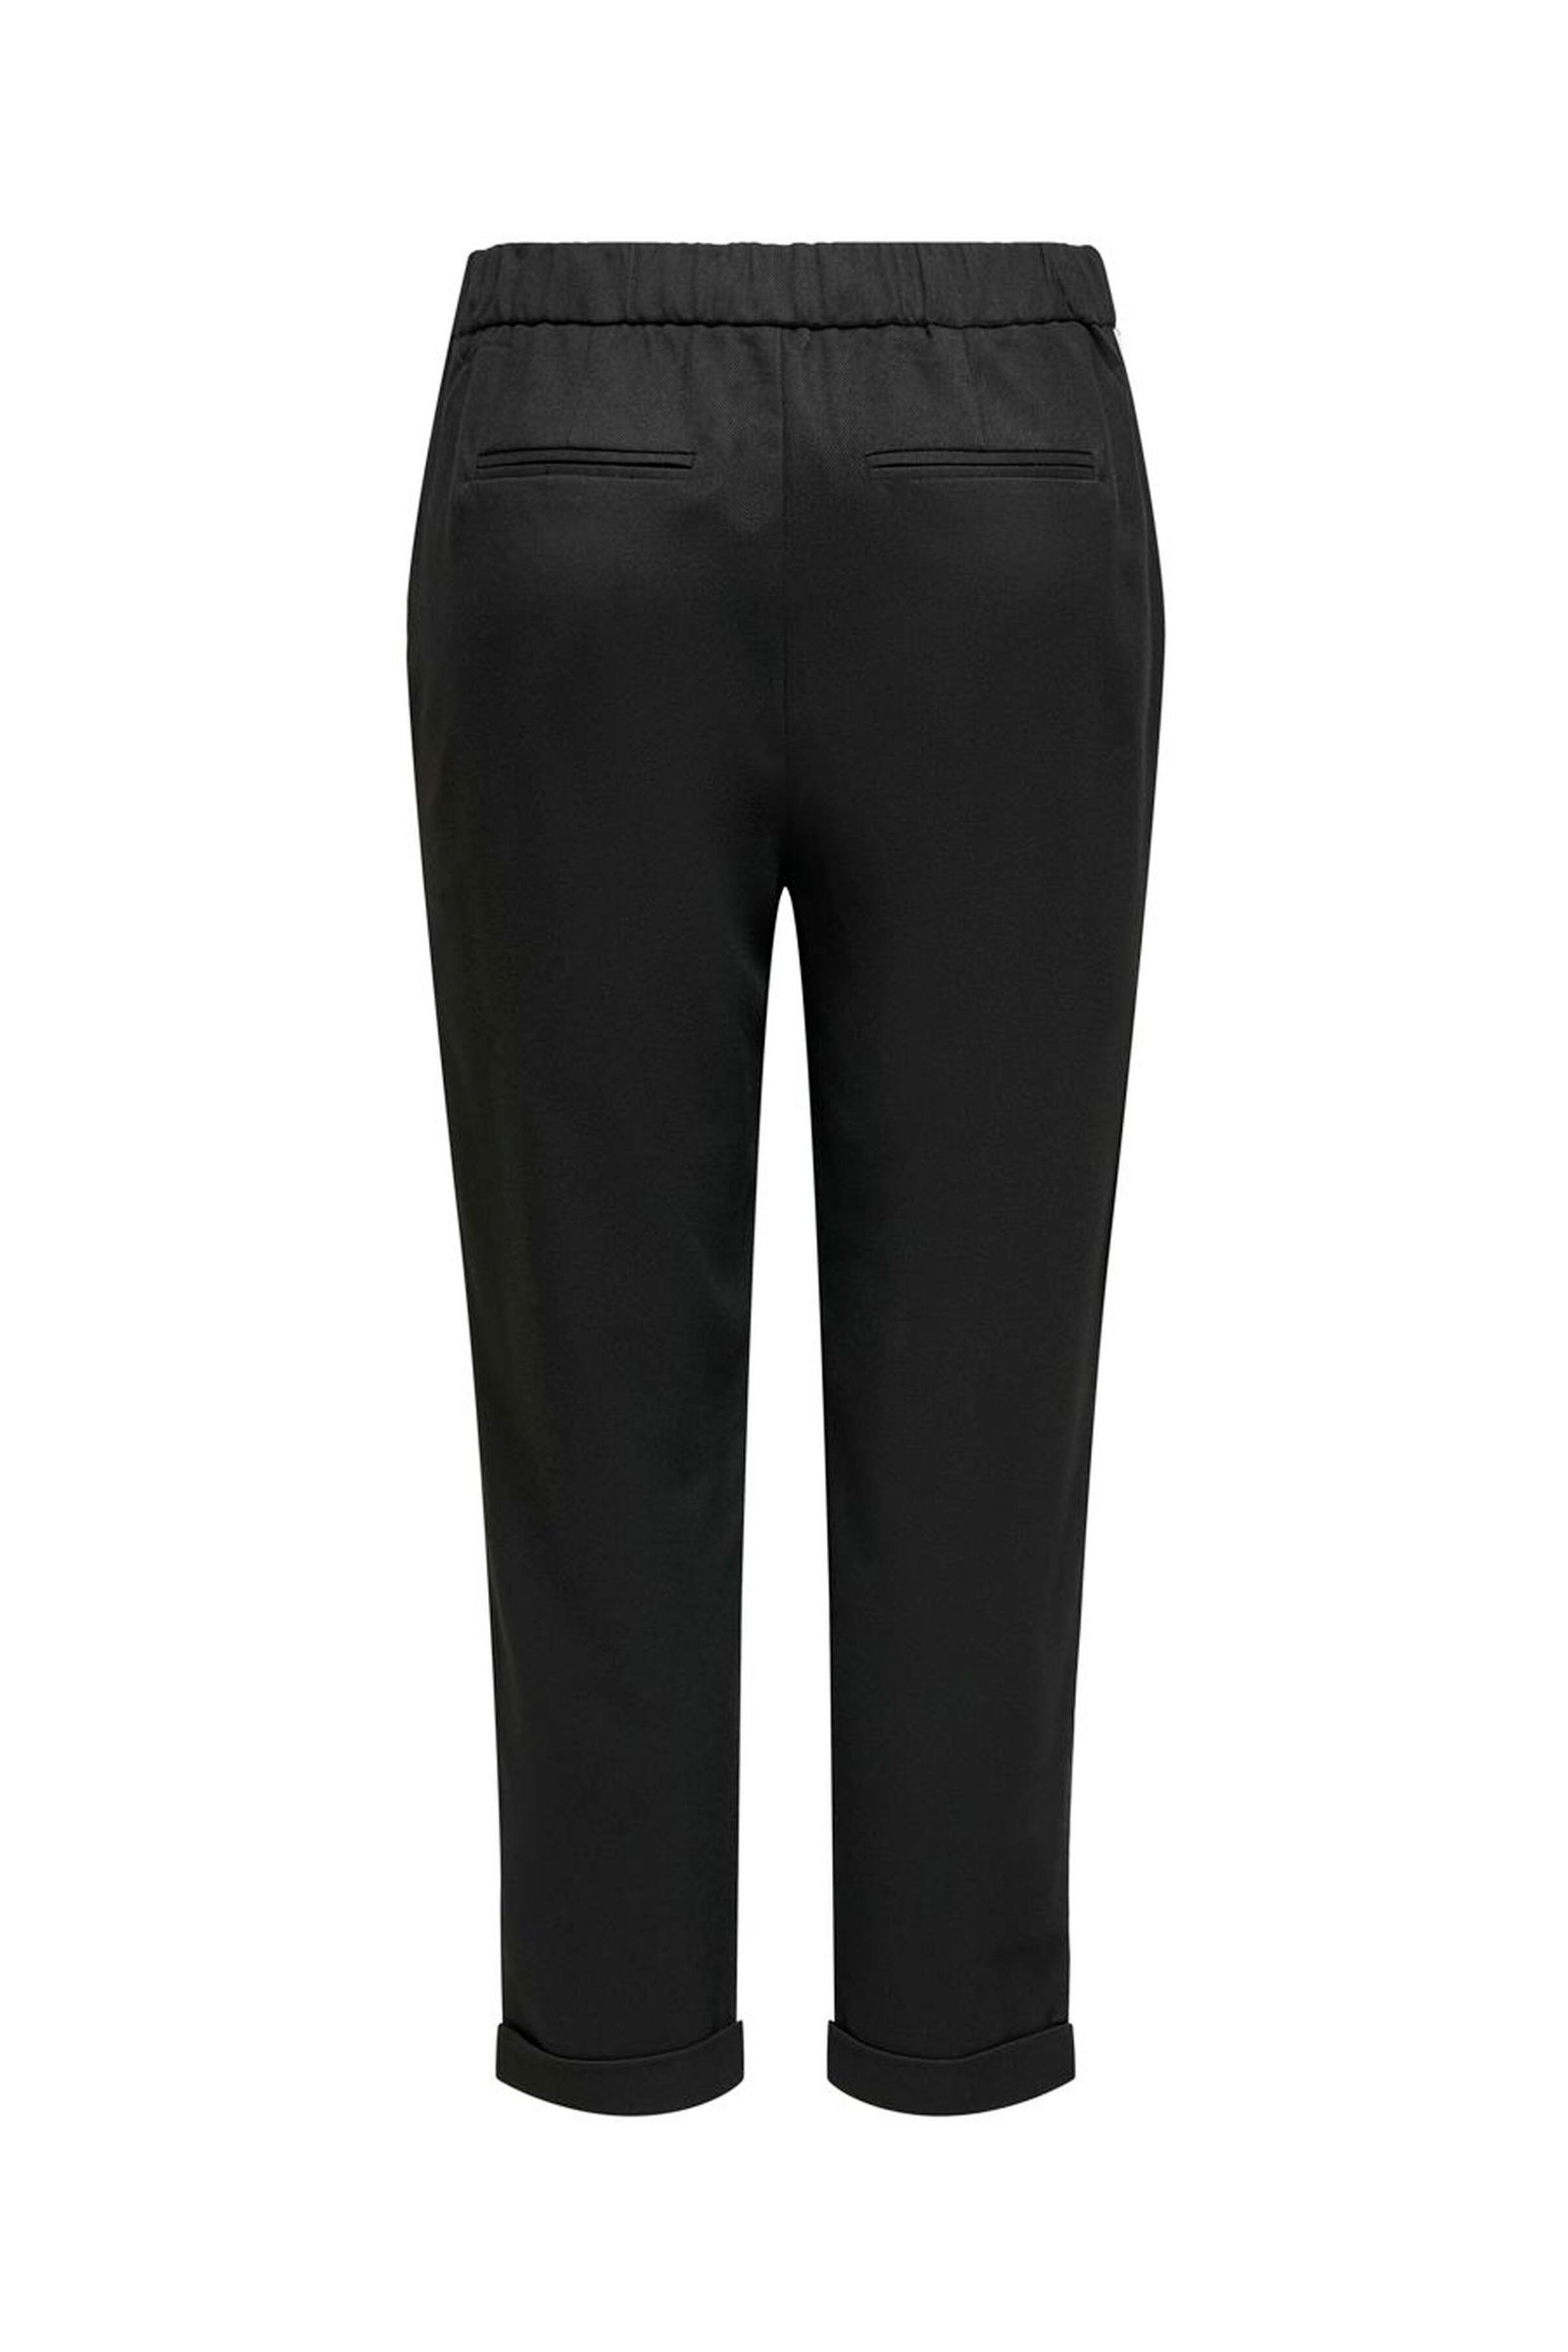 ONLY   Trousers   15175204Black